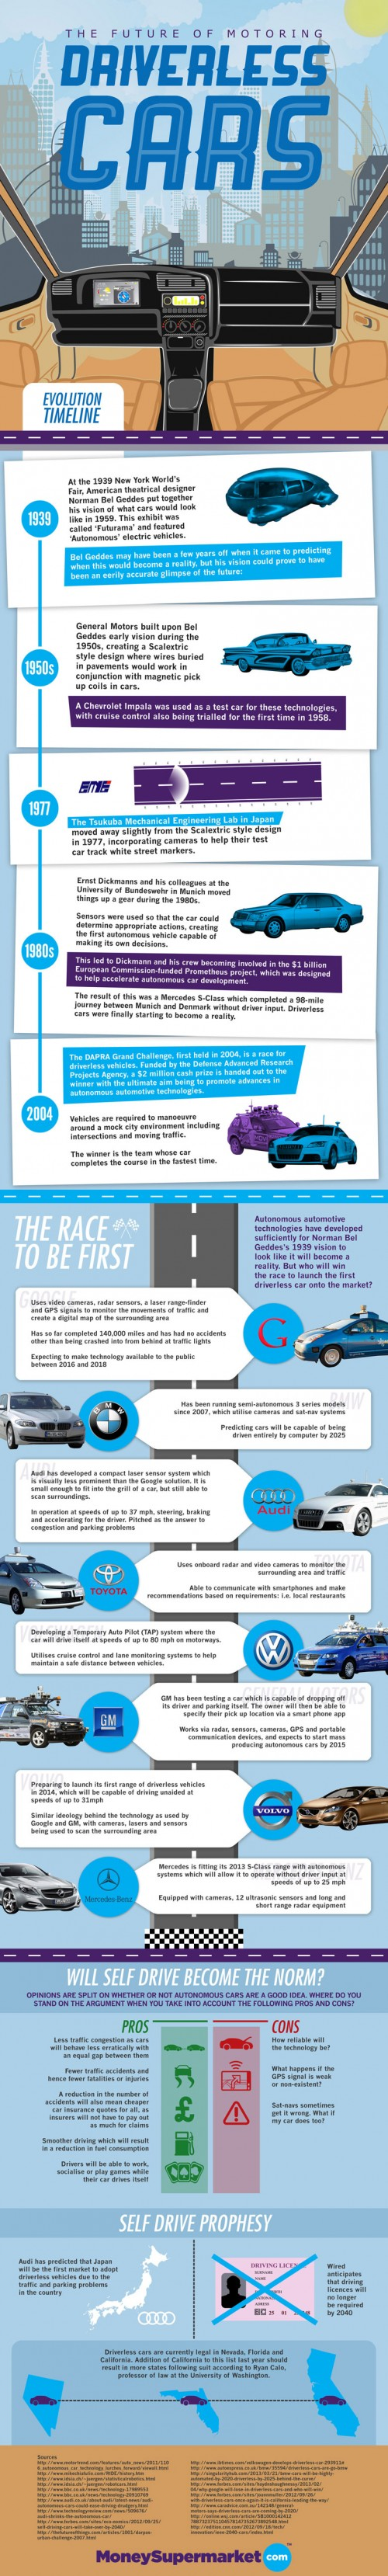 Infographic: Driverless Cars: Do You Bet On Google Or Mercedes-Benz?